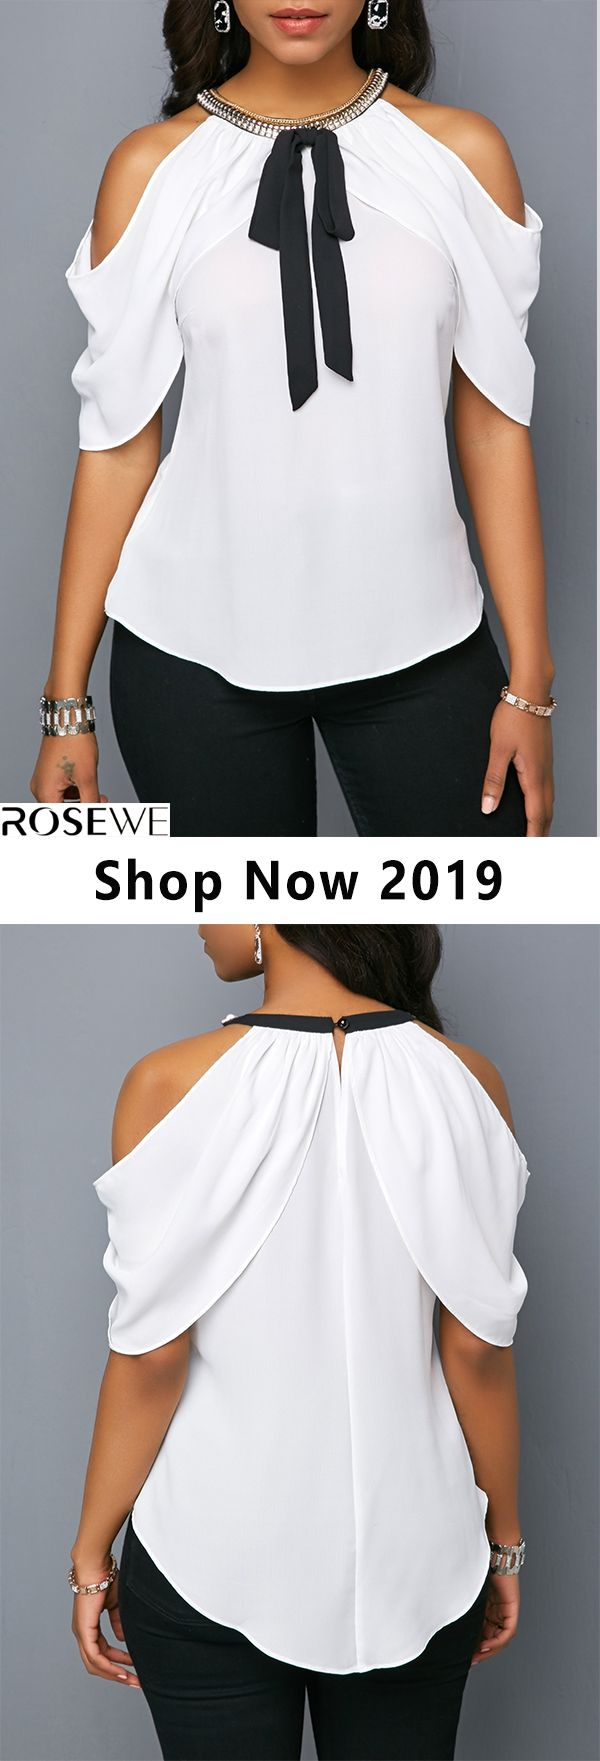 New arrival top, upgrade your wardrobe and try new styles this year 11